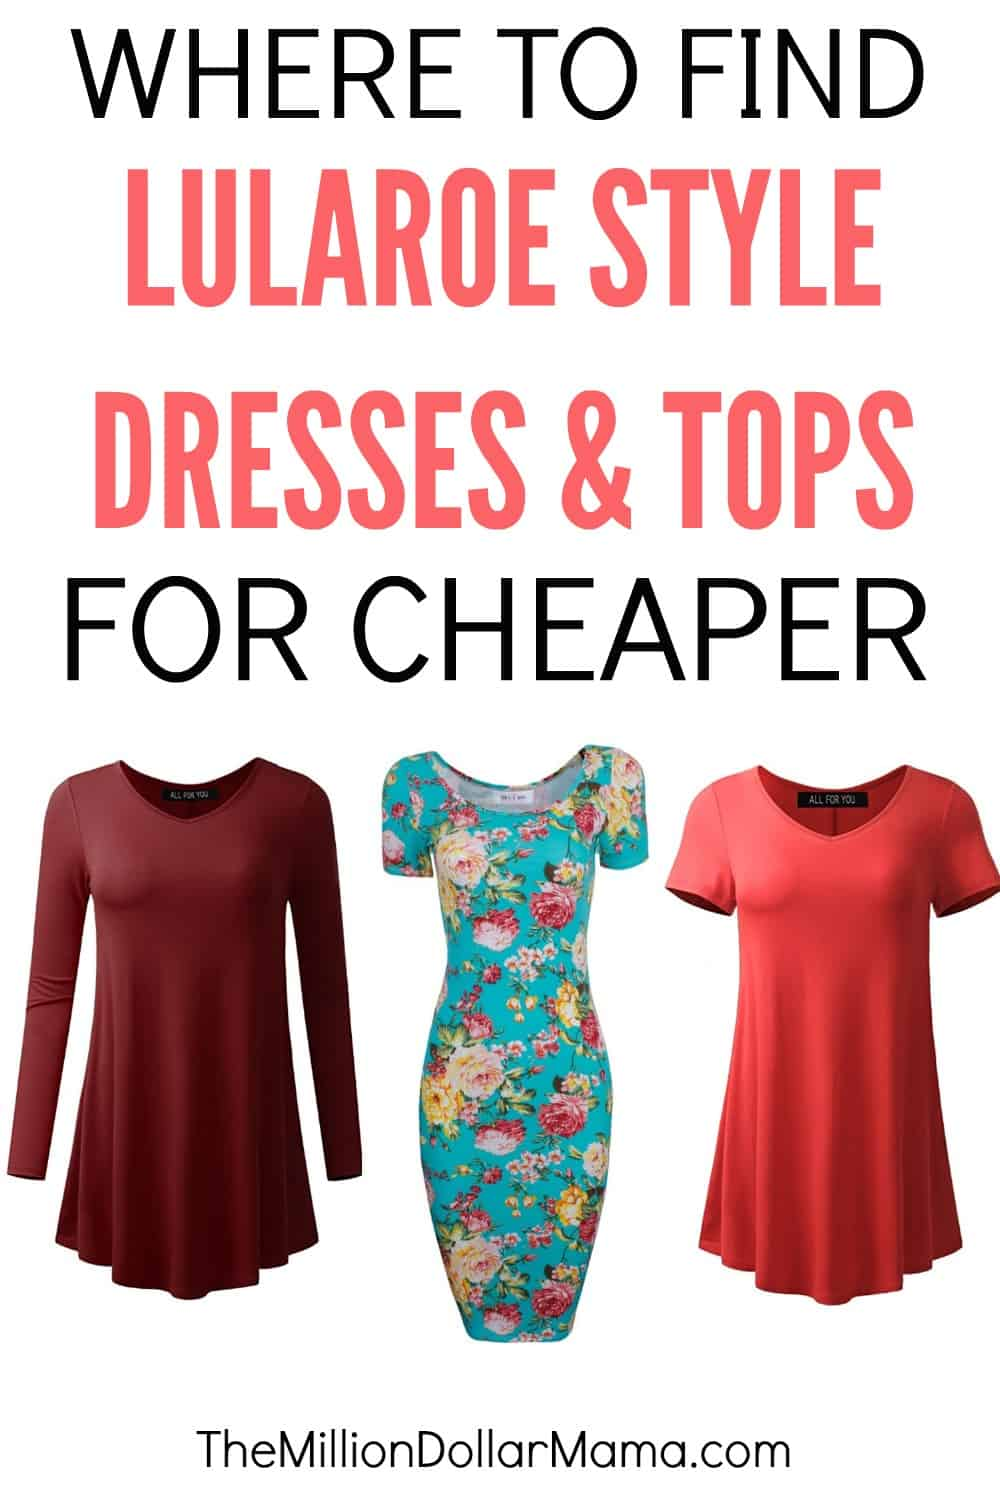 Where to Find Lularoe Style Dresses and Tops for Cheaper